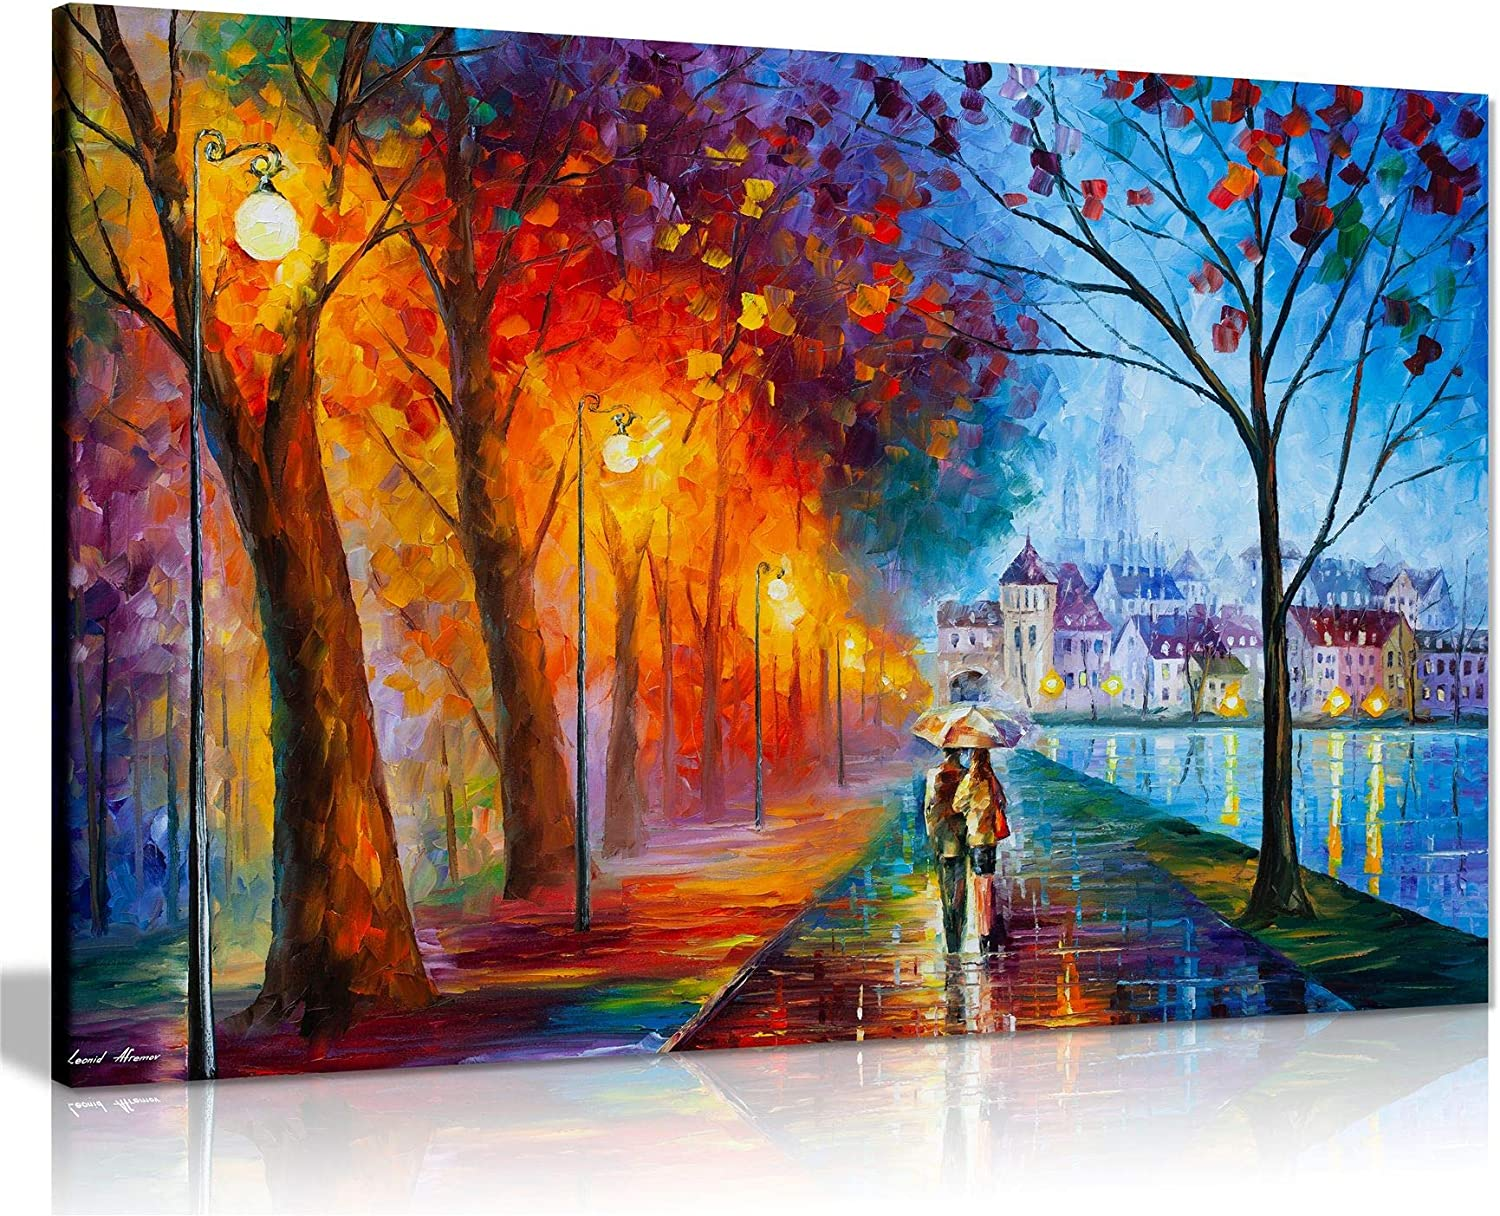 Amazon Com City By The Lake By Leonid Afremov Canvas Wall Art Picture Print For Home Decor 24x16 Posters Prints